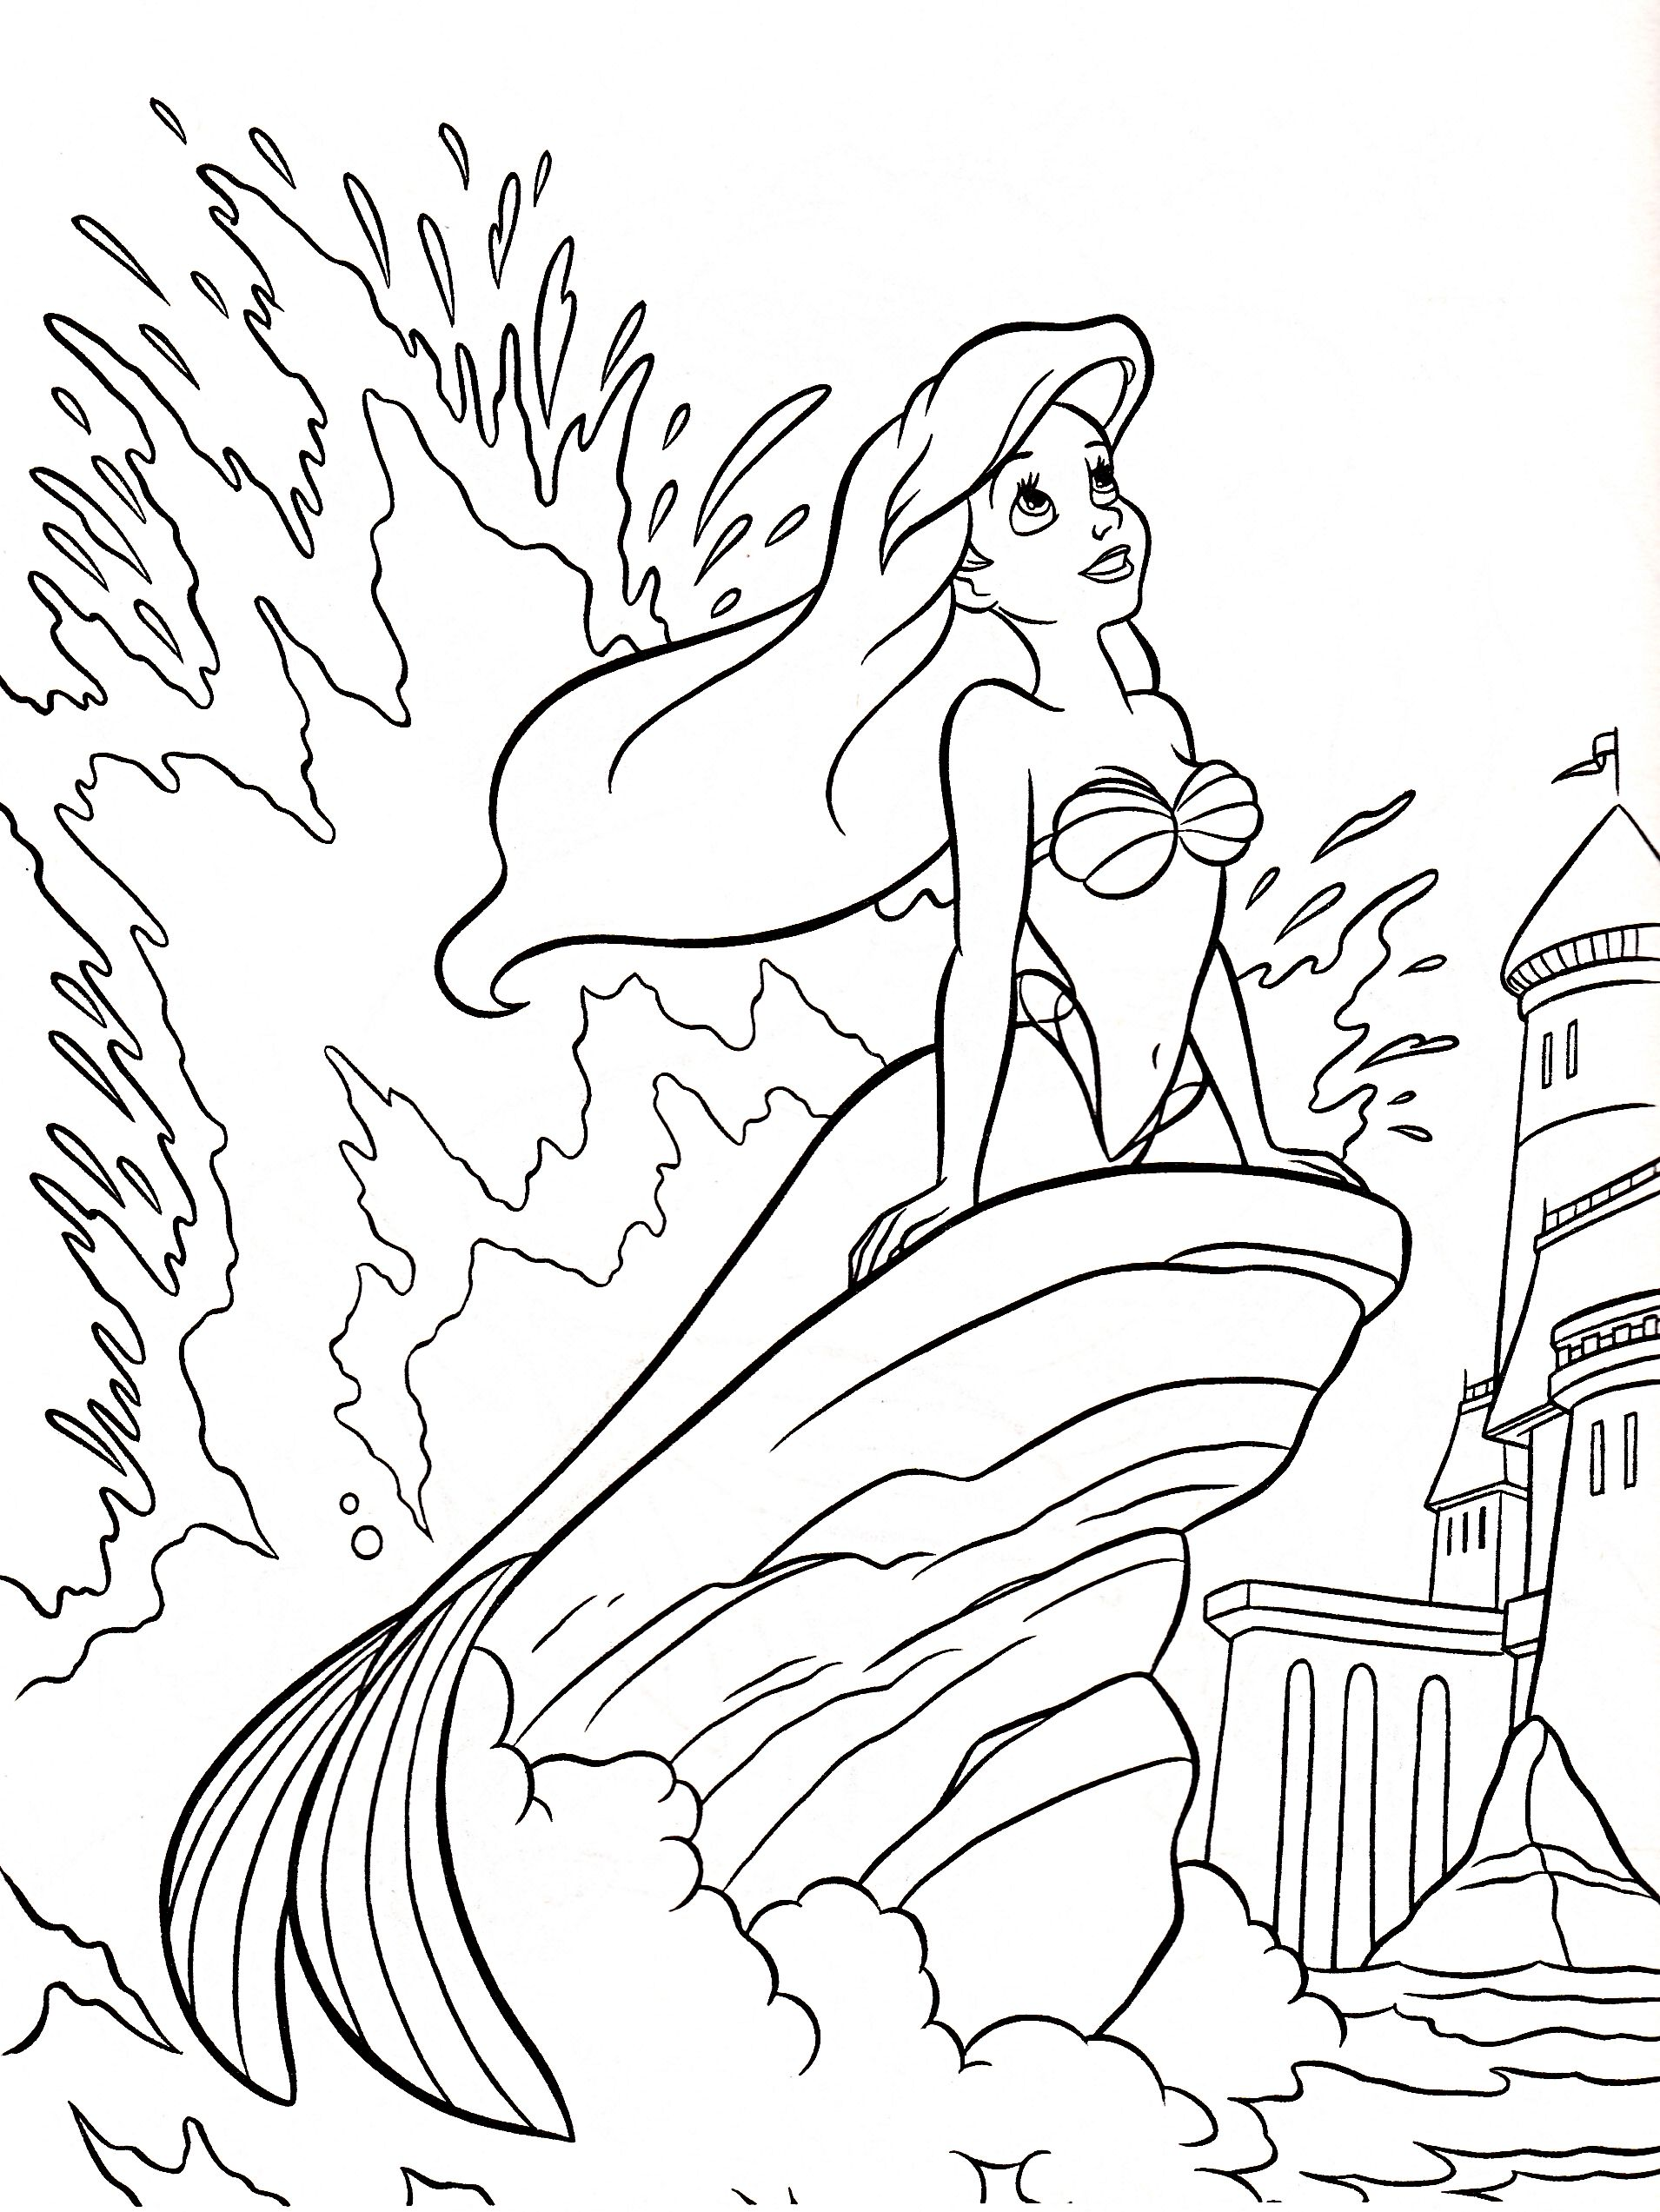 The Little Mermaid Ariel Coloring Pages Disney Princess Coloring Pages Princess Coloring Pages